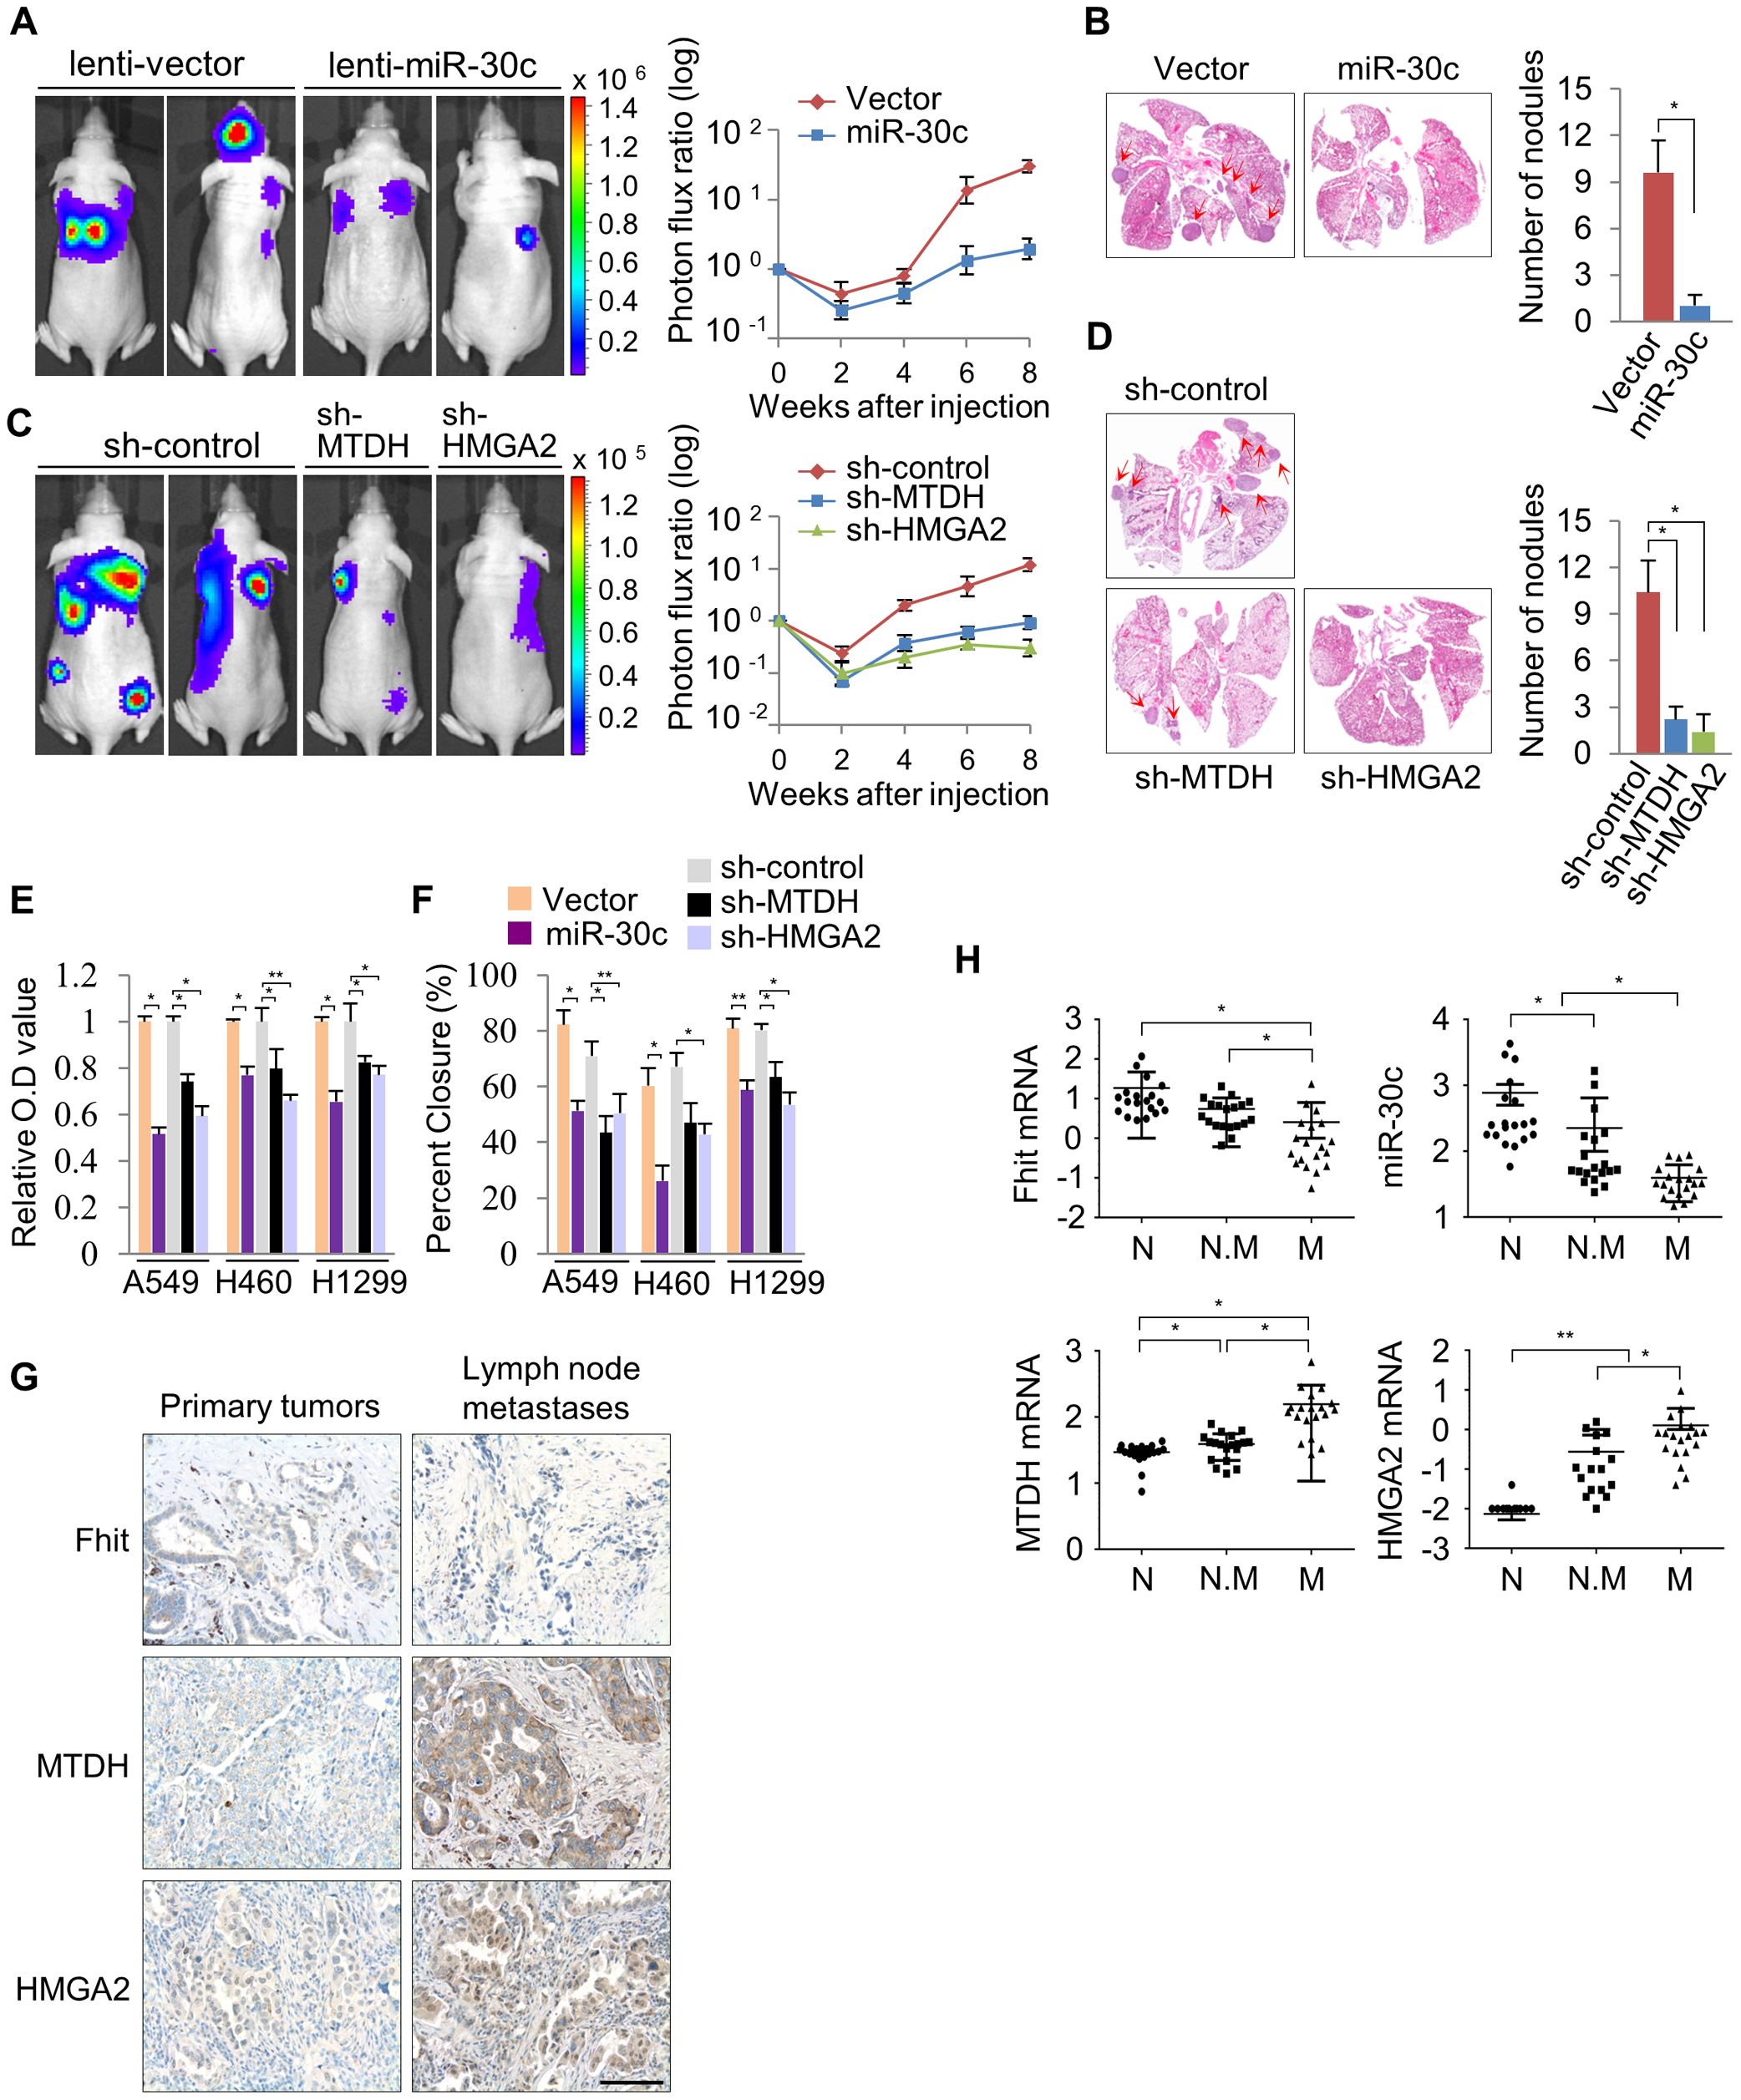 miR-30c inhibits metastasis through the suppression of MTDH and HMGA2 in NSCLCs.